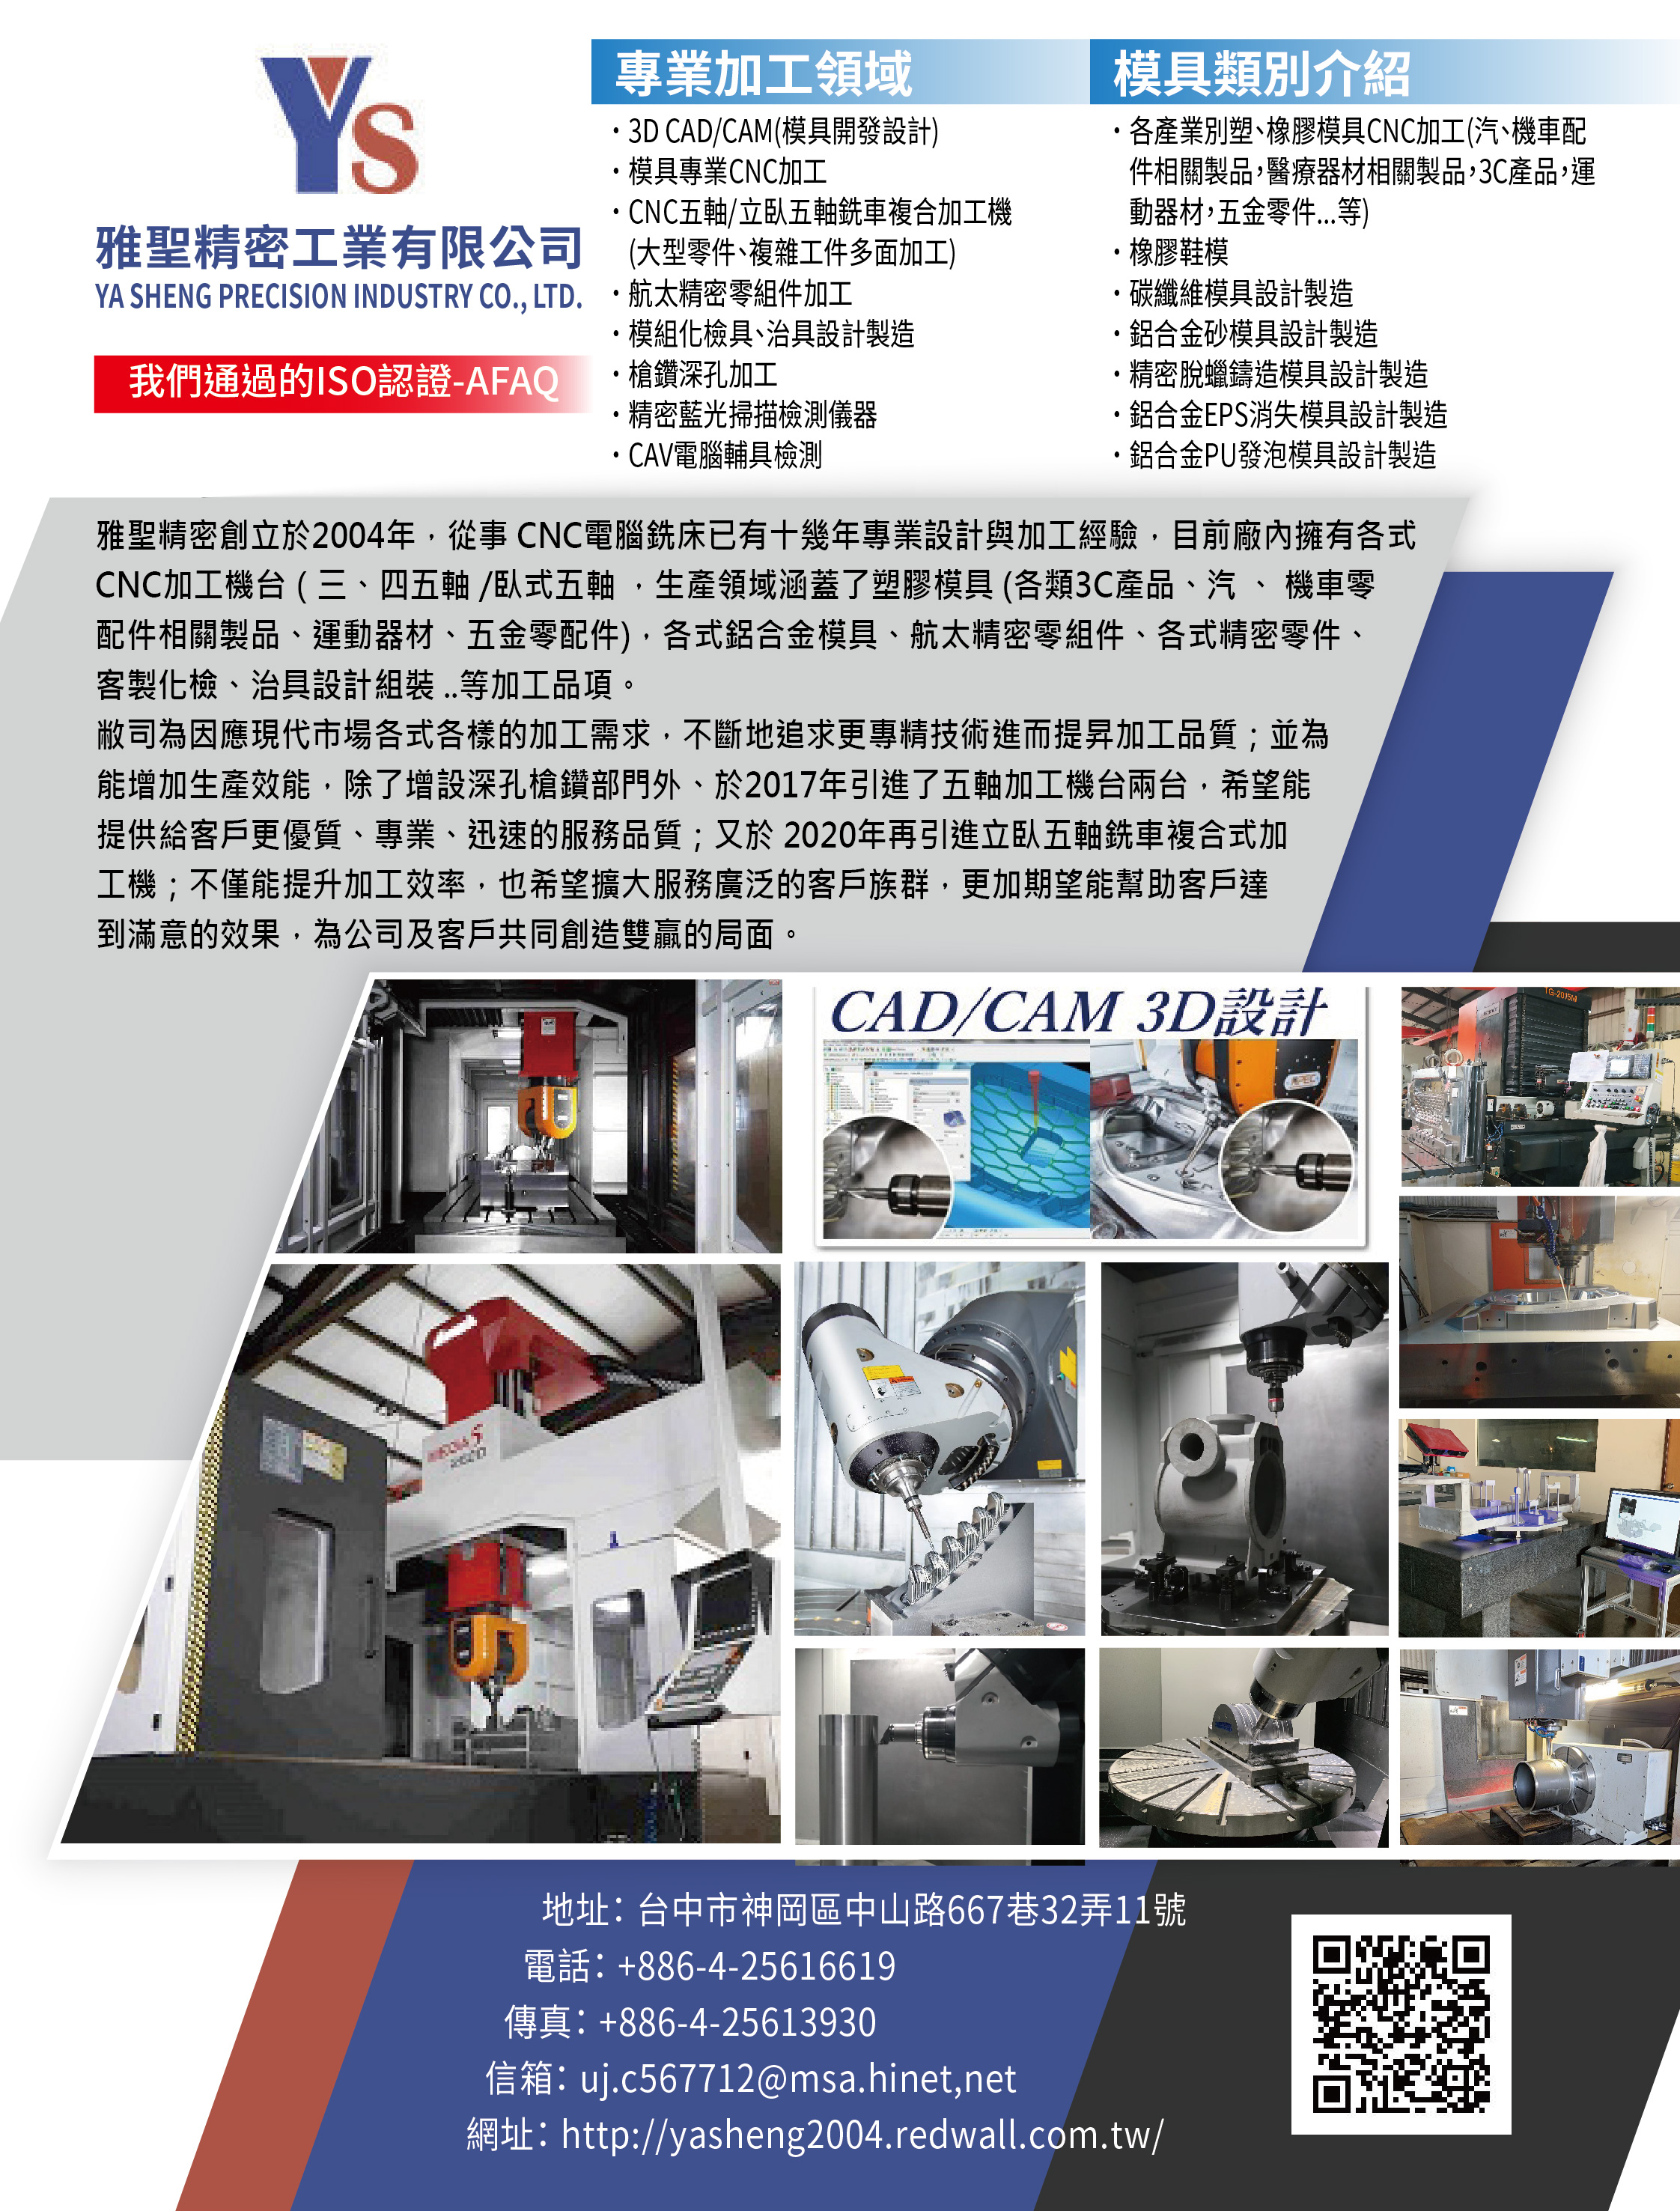 YA SHENG PRECISION INDUSTRY CO., LTD.